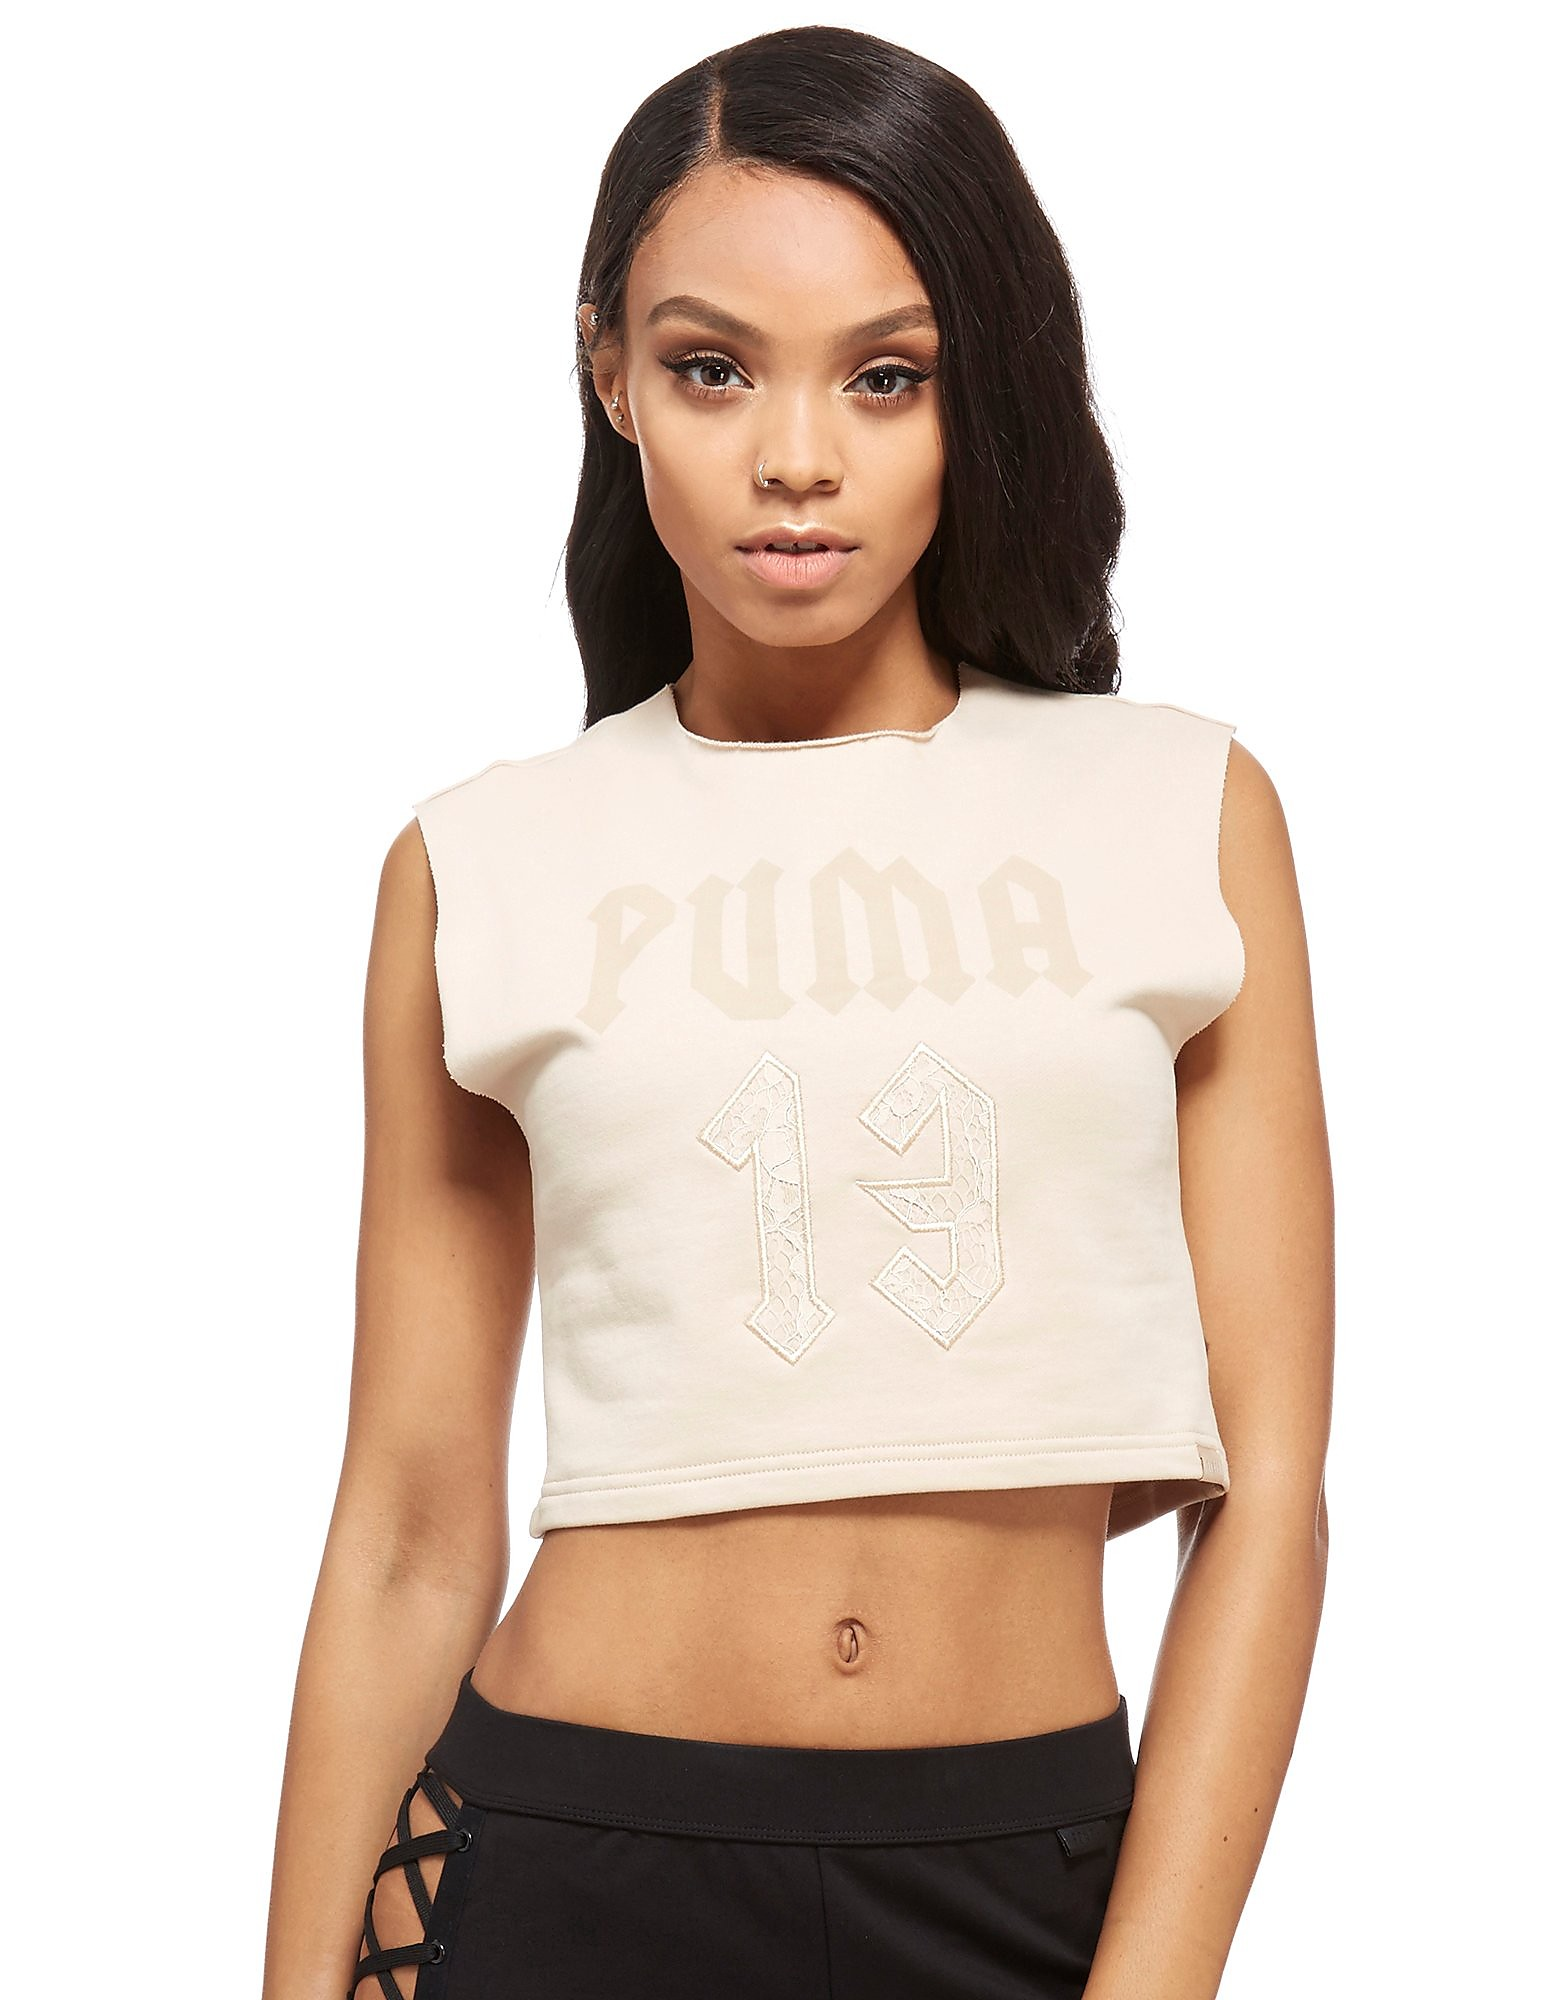 PUMA Fenty Sleeveless Crop Top